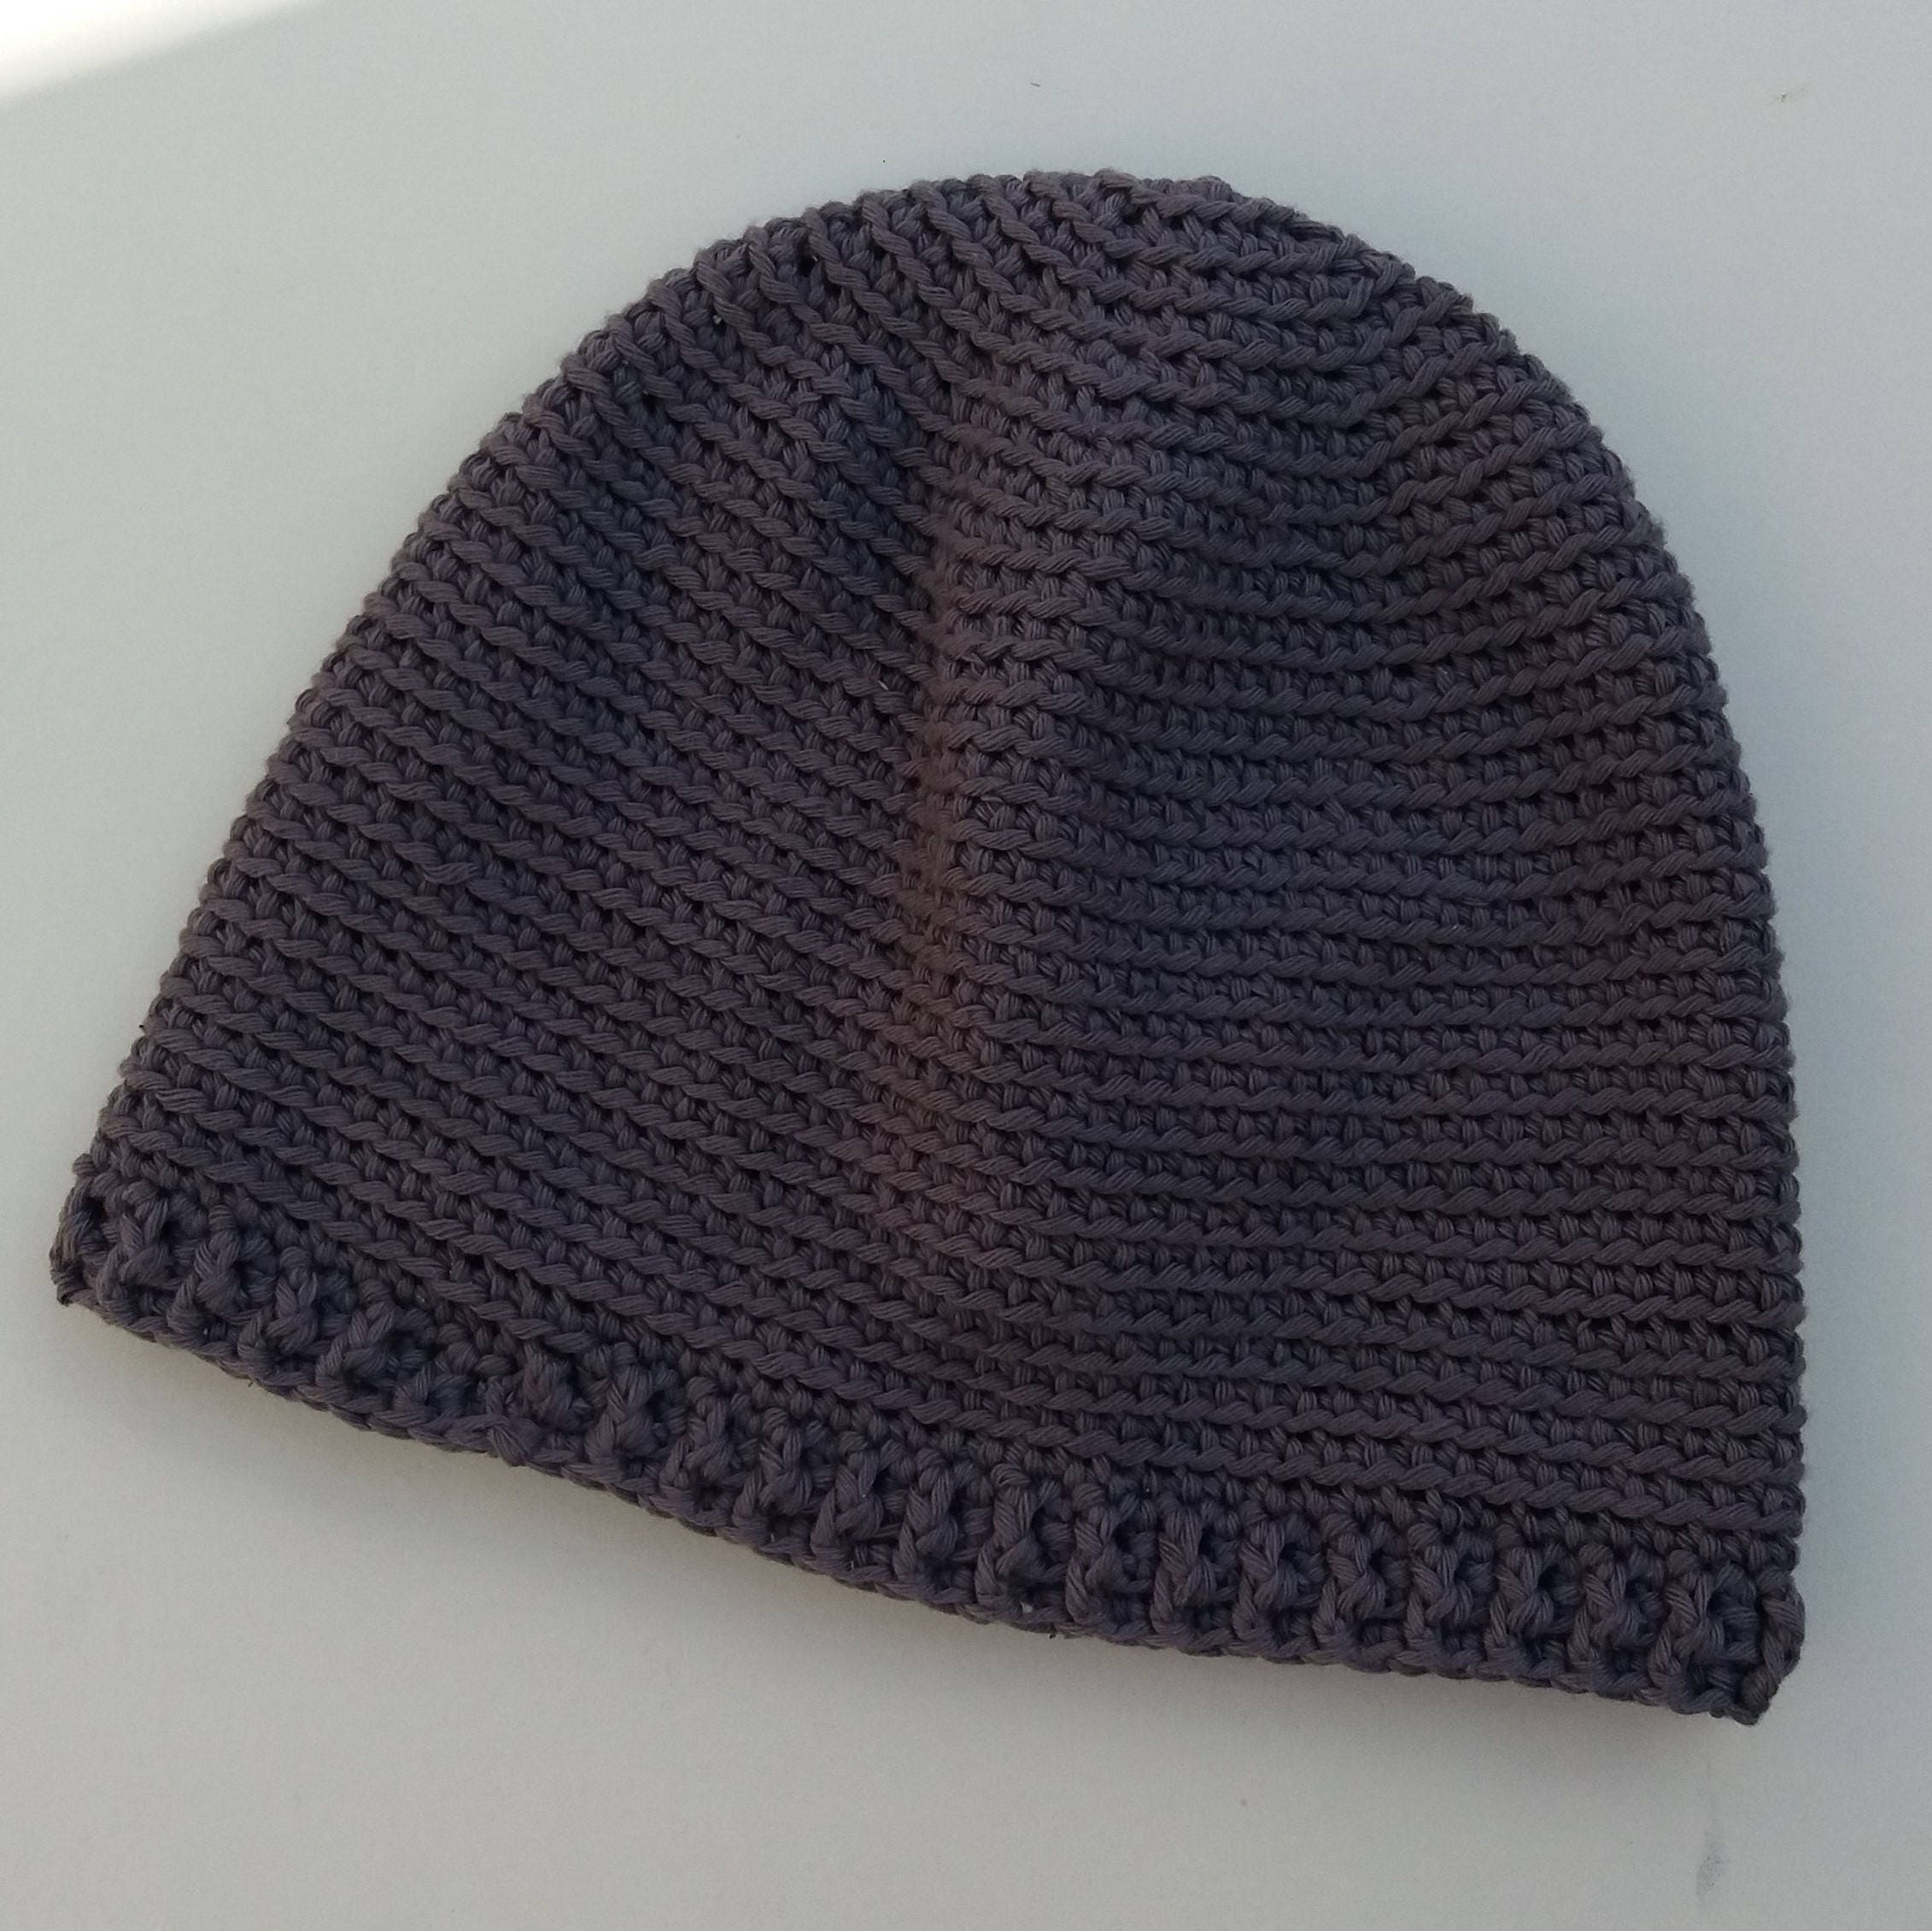 Blackthorn Hat - Crochet Pattern for Simple Beanie Hat for Children ...